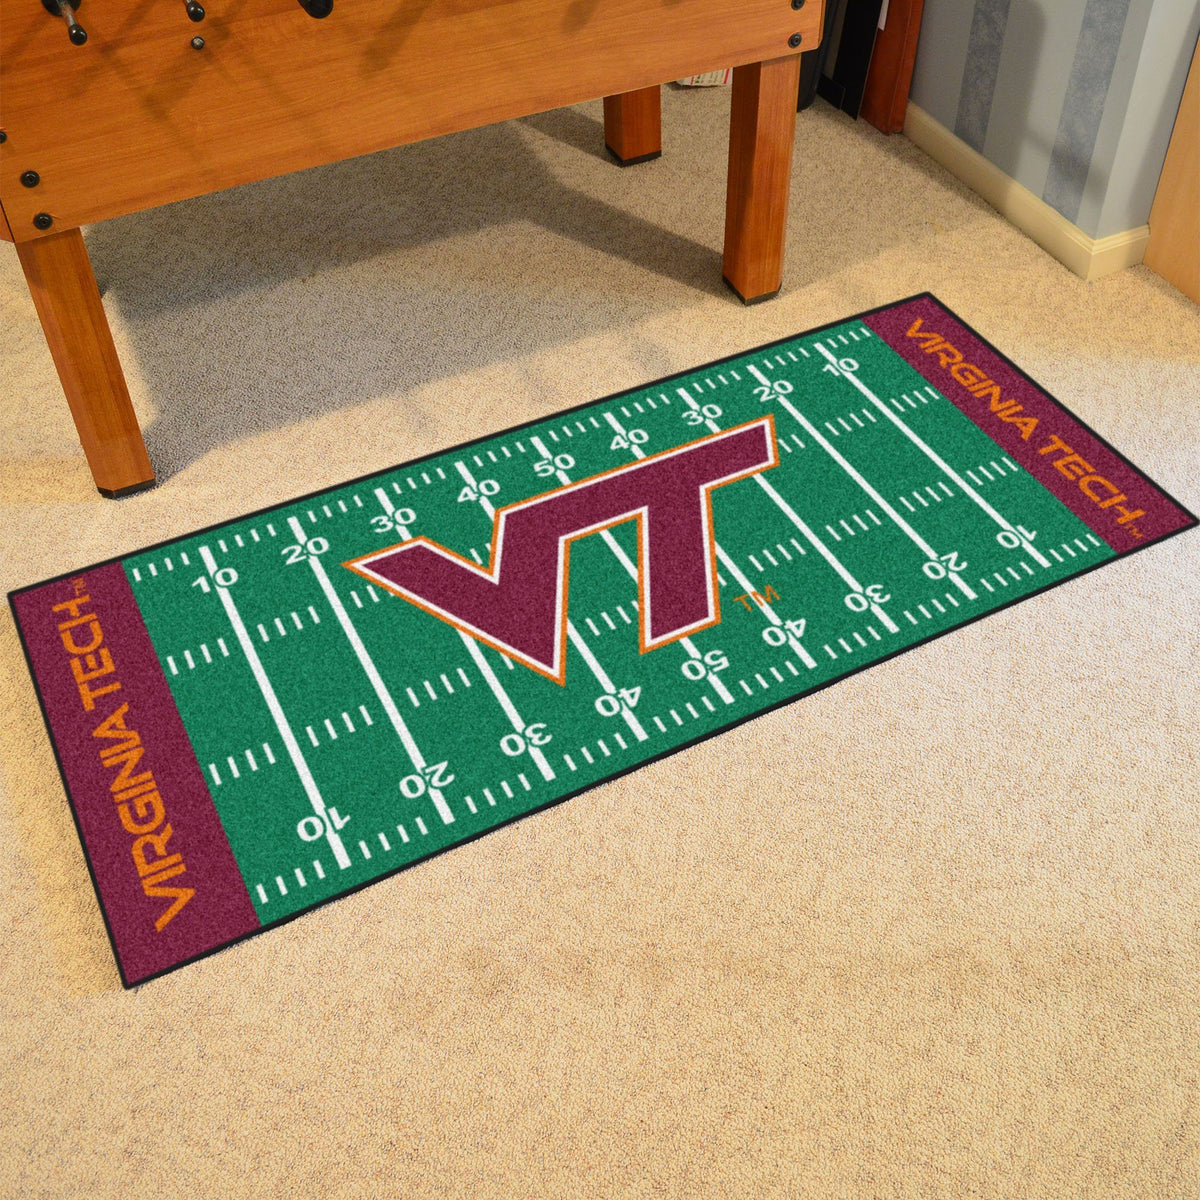 Collegiate - Football Field Runner Collegiate Mats, Rectangular Mats, Football Field Runner, Collegiate, Home Fan Mats Virginia Tech